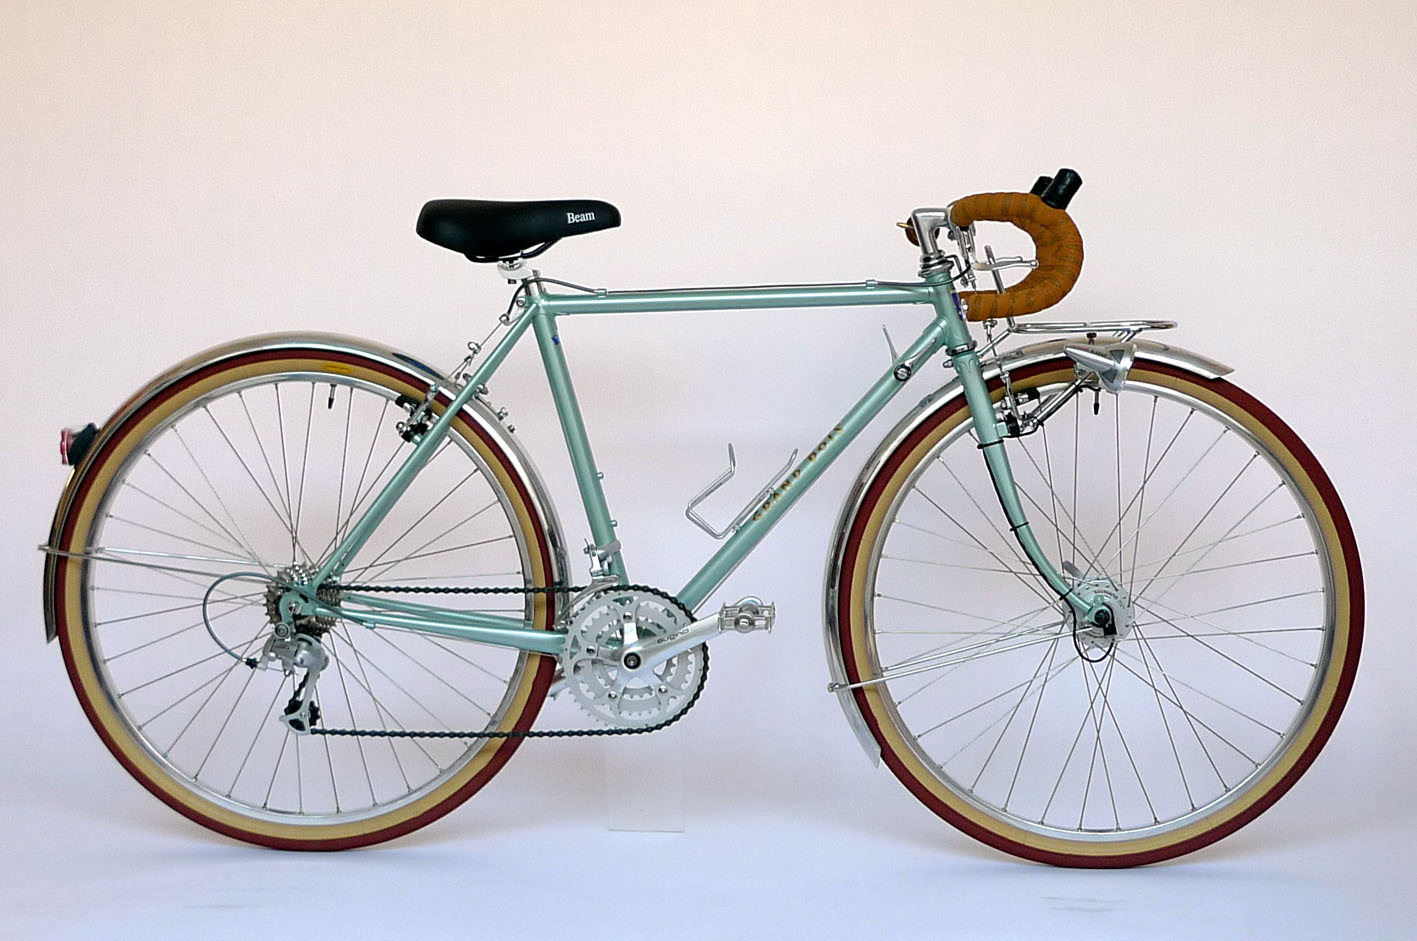 Type E/ 650B Randonneur/ Ms.Ando from Kyoto/ 2009.11.22